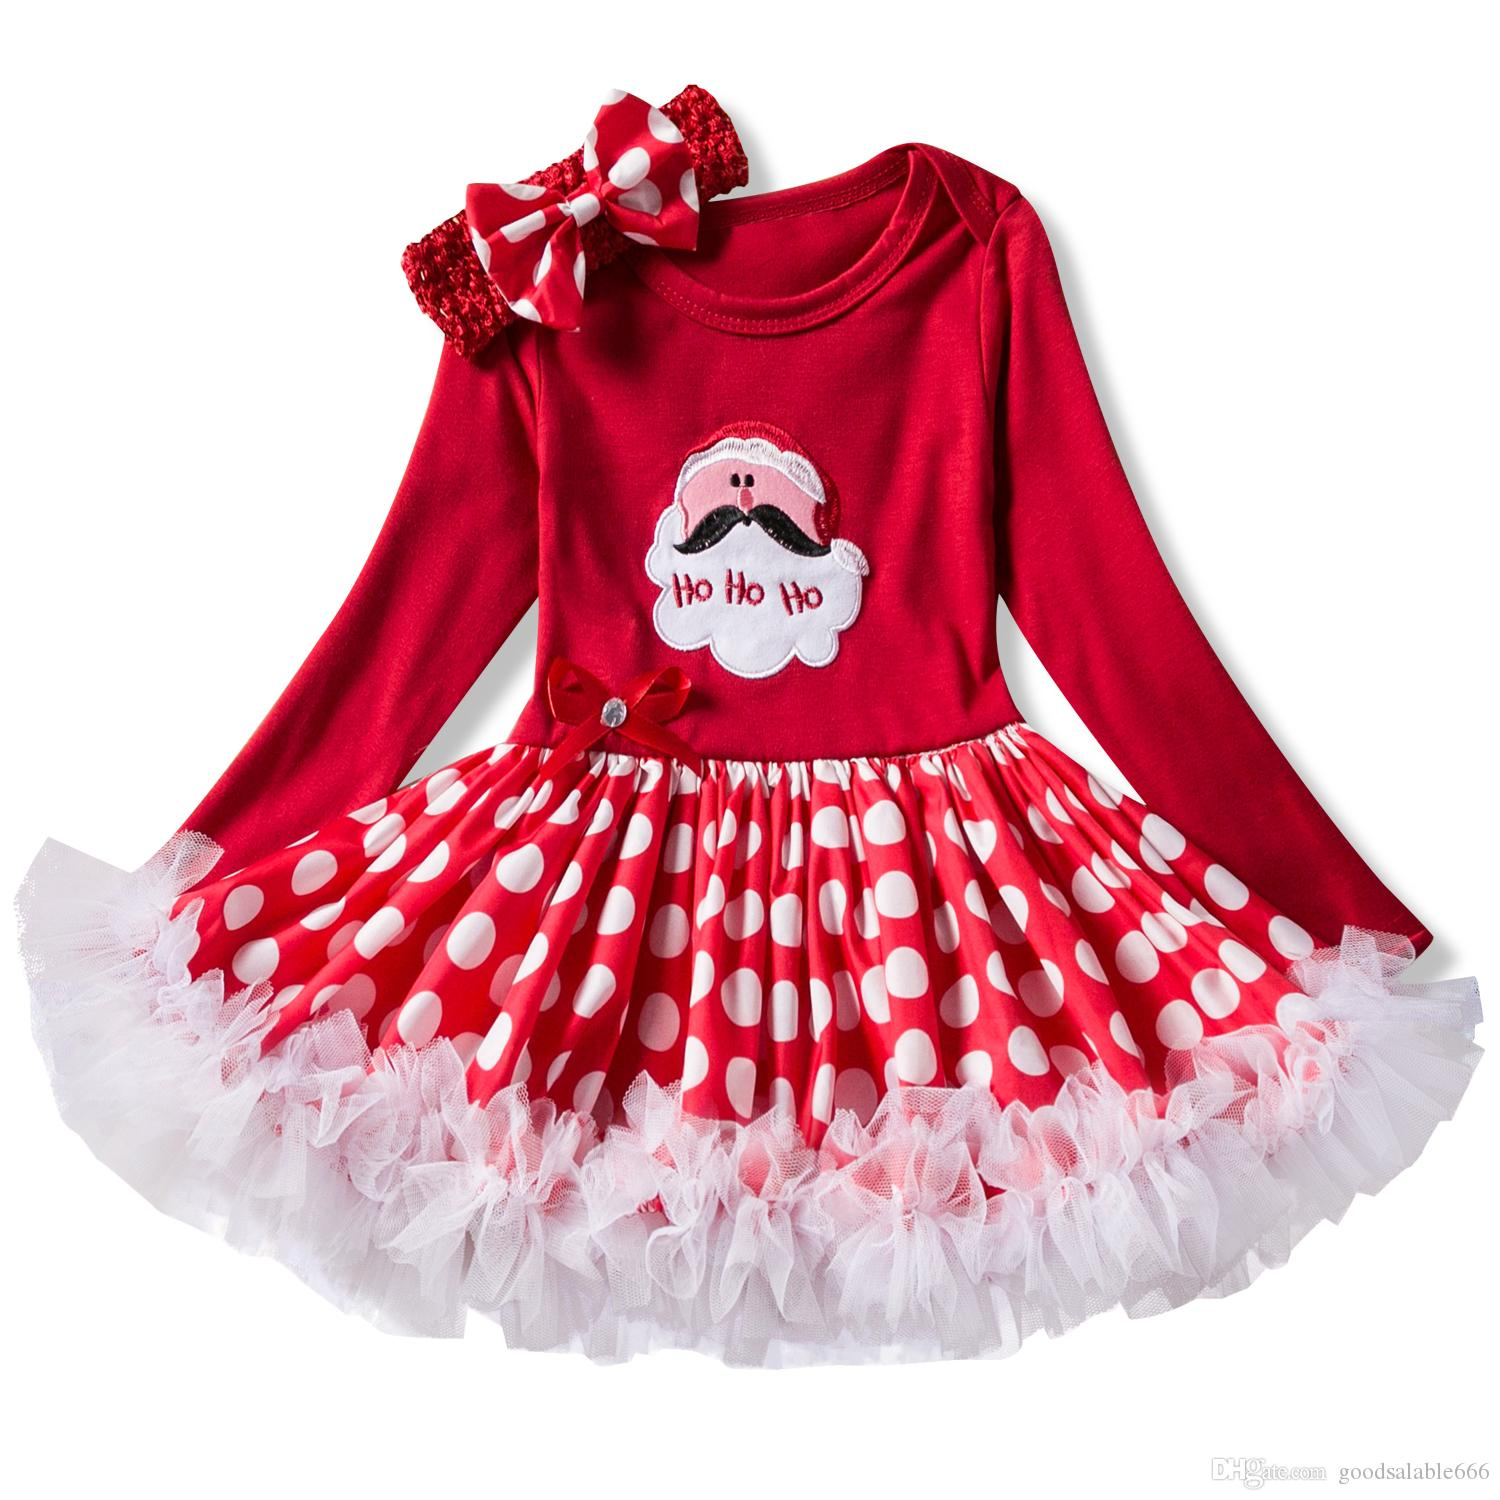 76c9cbbc643d Baby Girls Christmas Outfits Newborn Girl Romper Princess Dresses with  Hairband Toddler Baby Girl Xmas Dresses My Frist Christmas Clothes